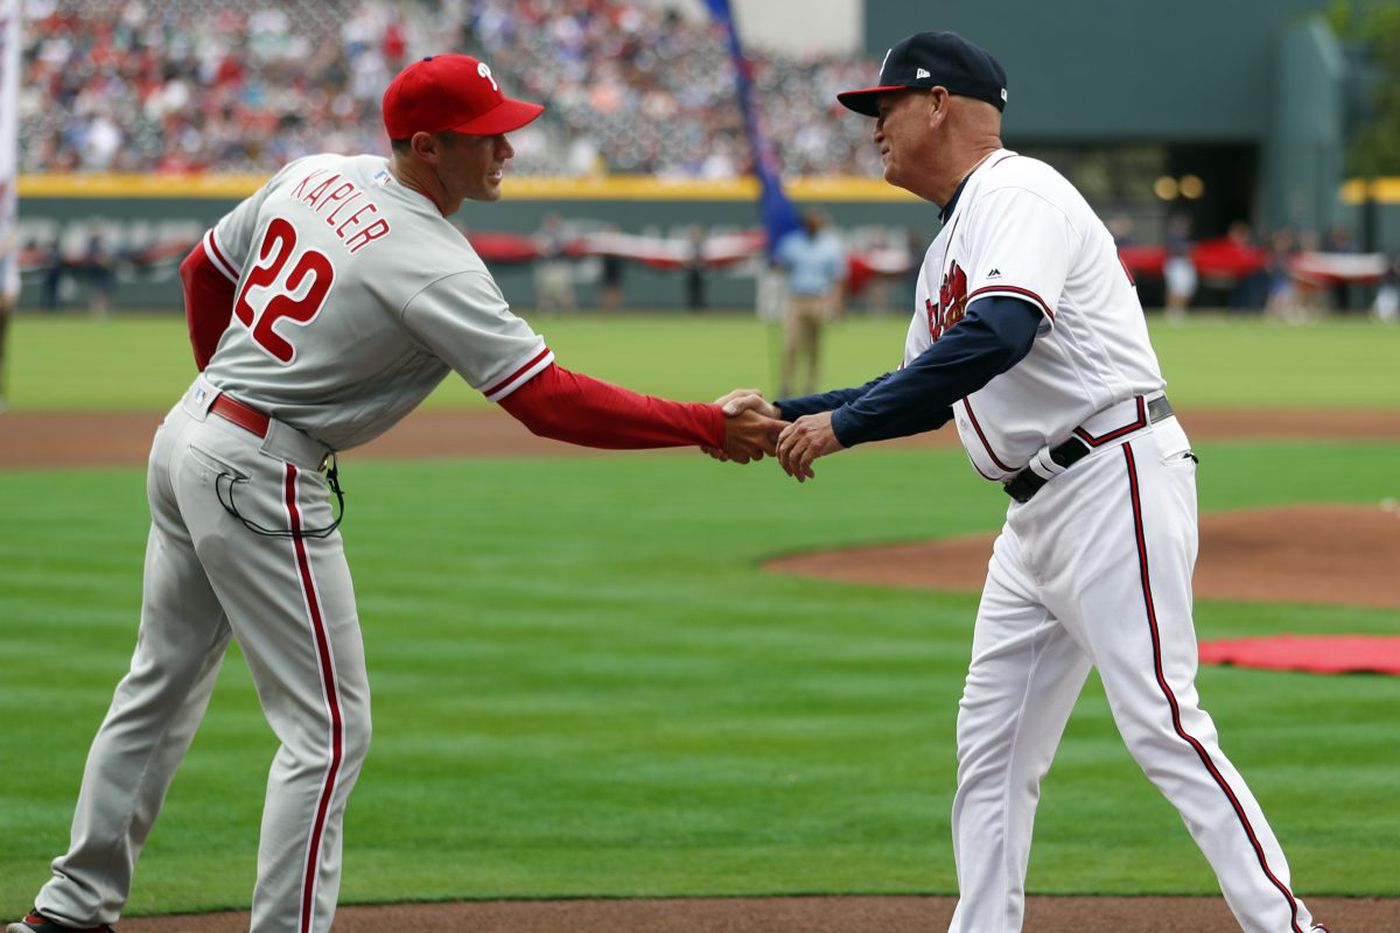 Gabe Kapler's managing-by-numbers approach backfires on him in Phillies debut | Bob Brookover